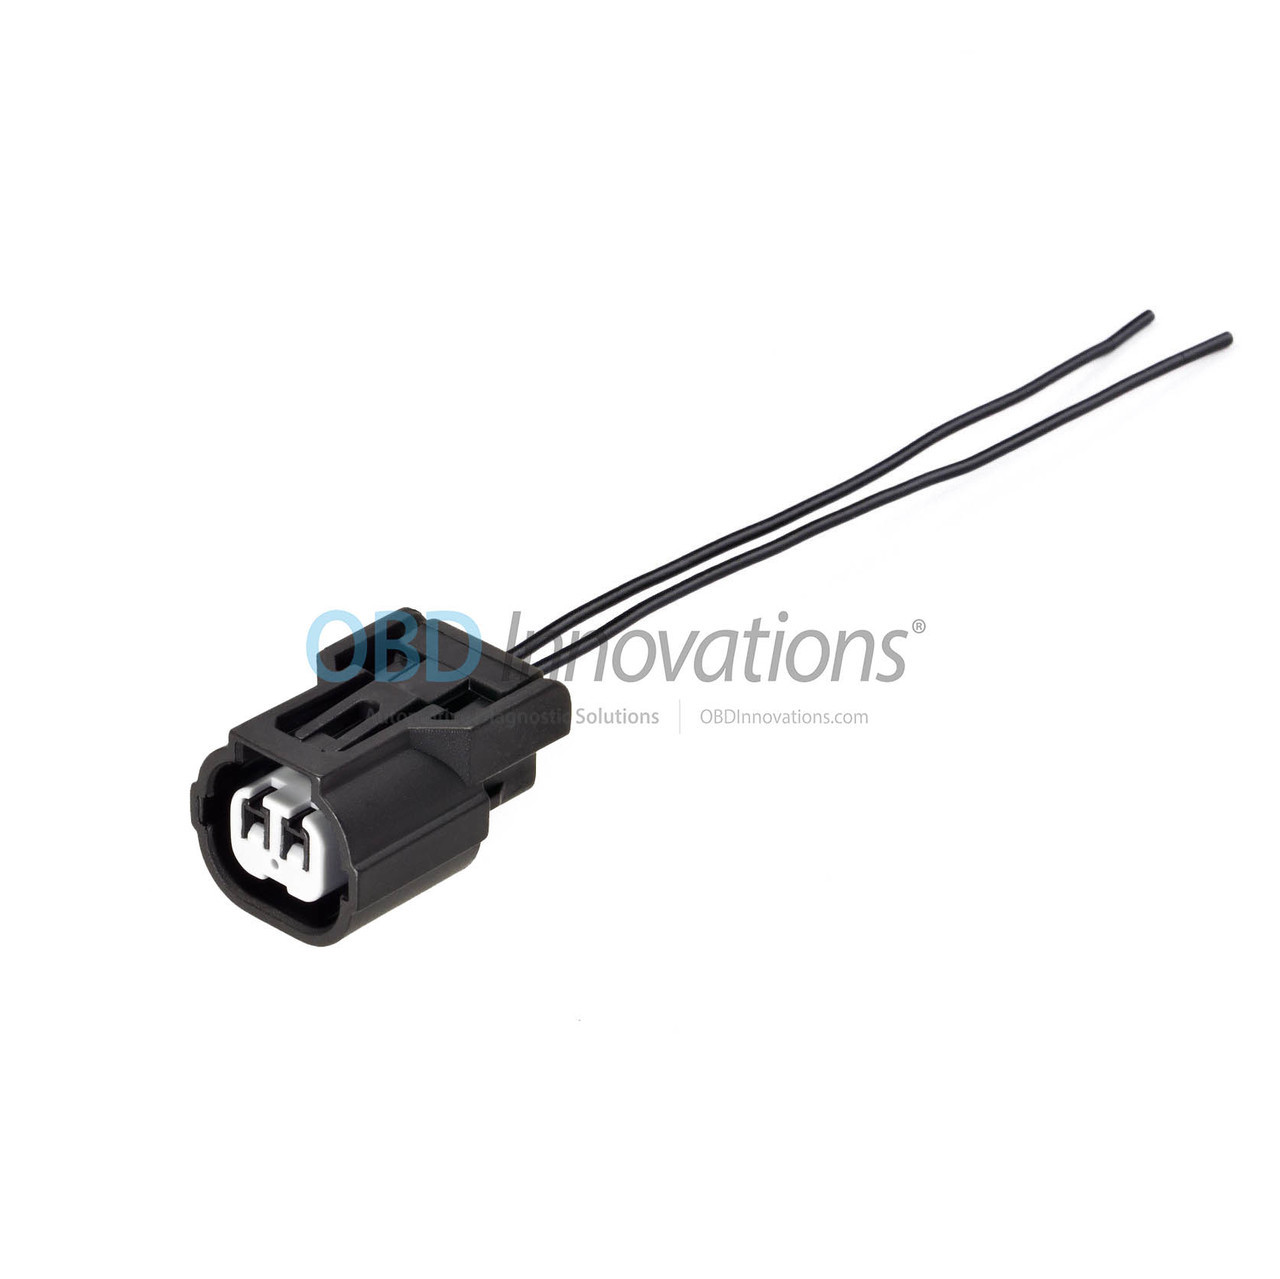 Drl Connector Harness For Honda Acura Obd Innovations